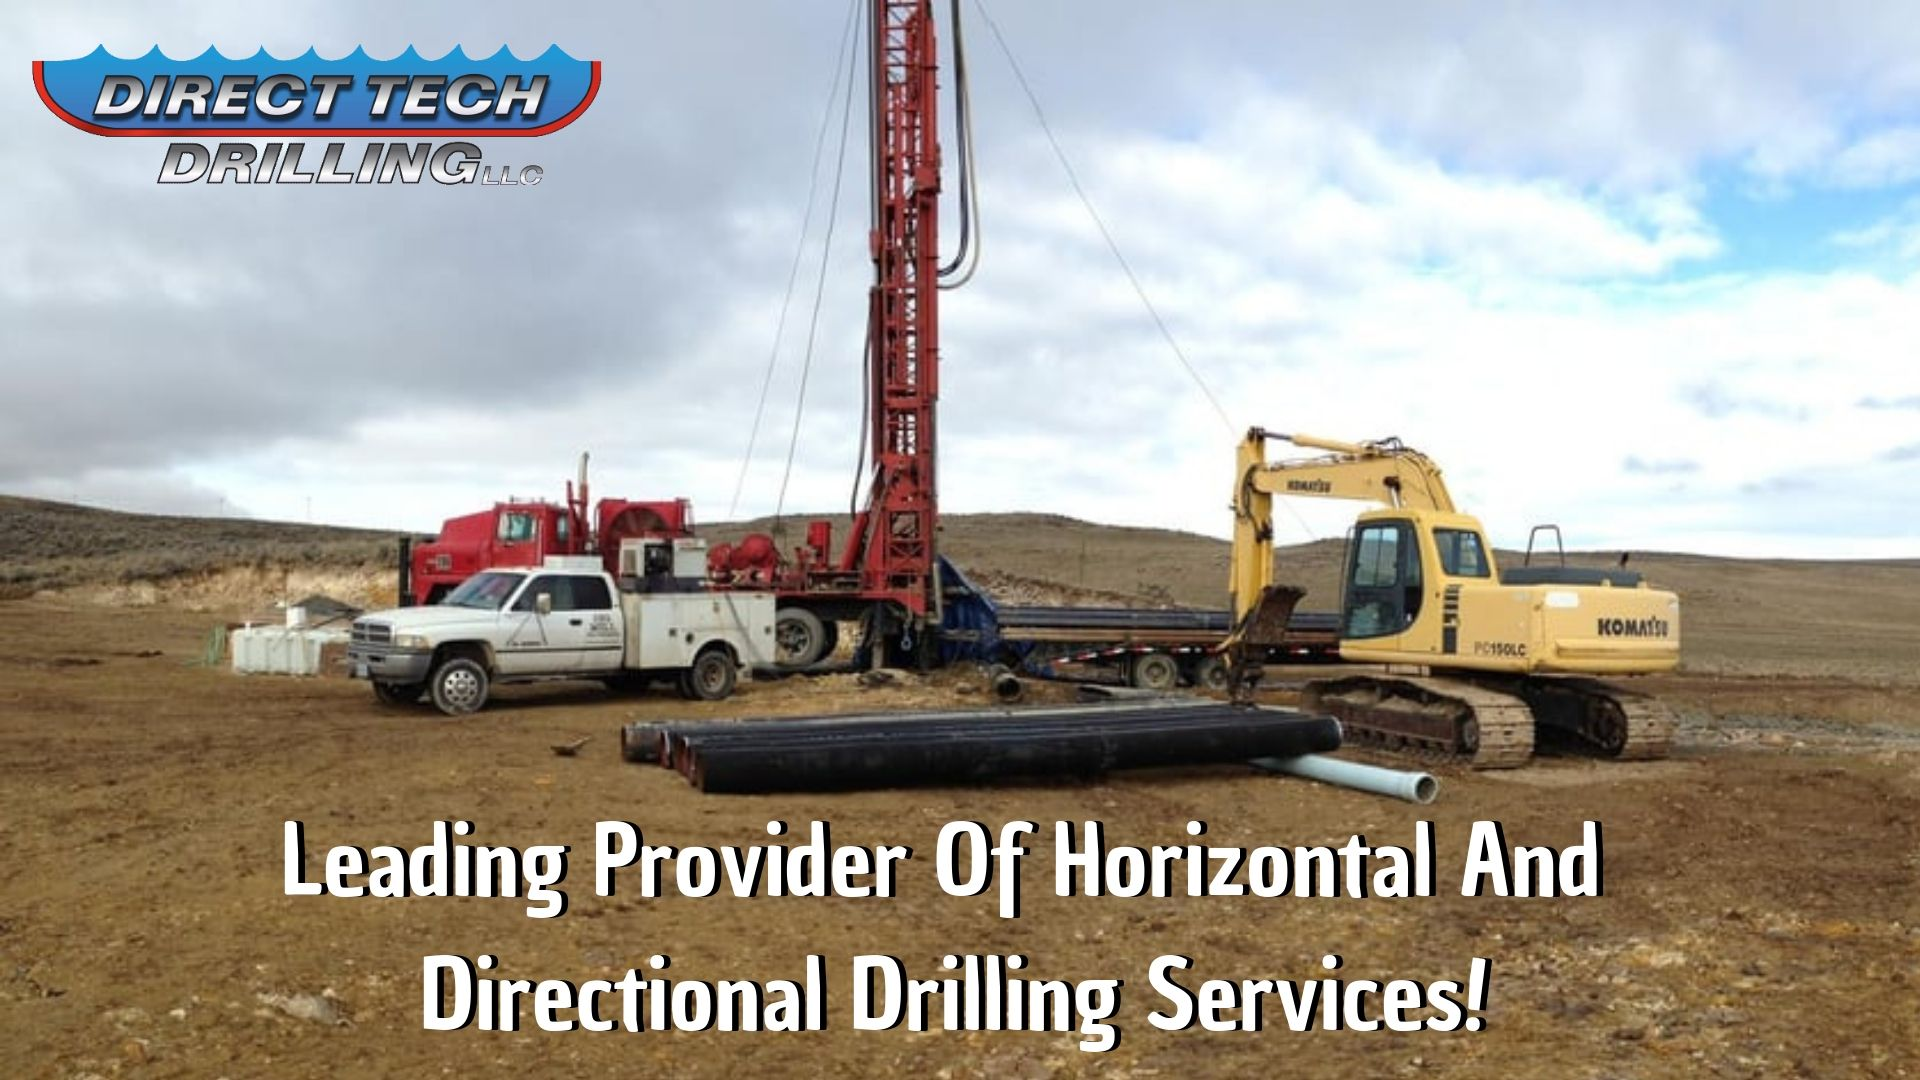 Need underground boring services for your project? Contact